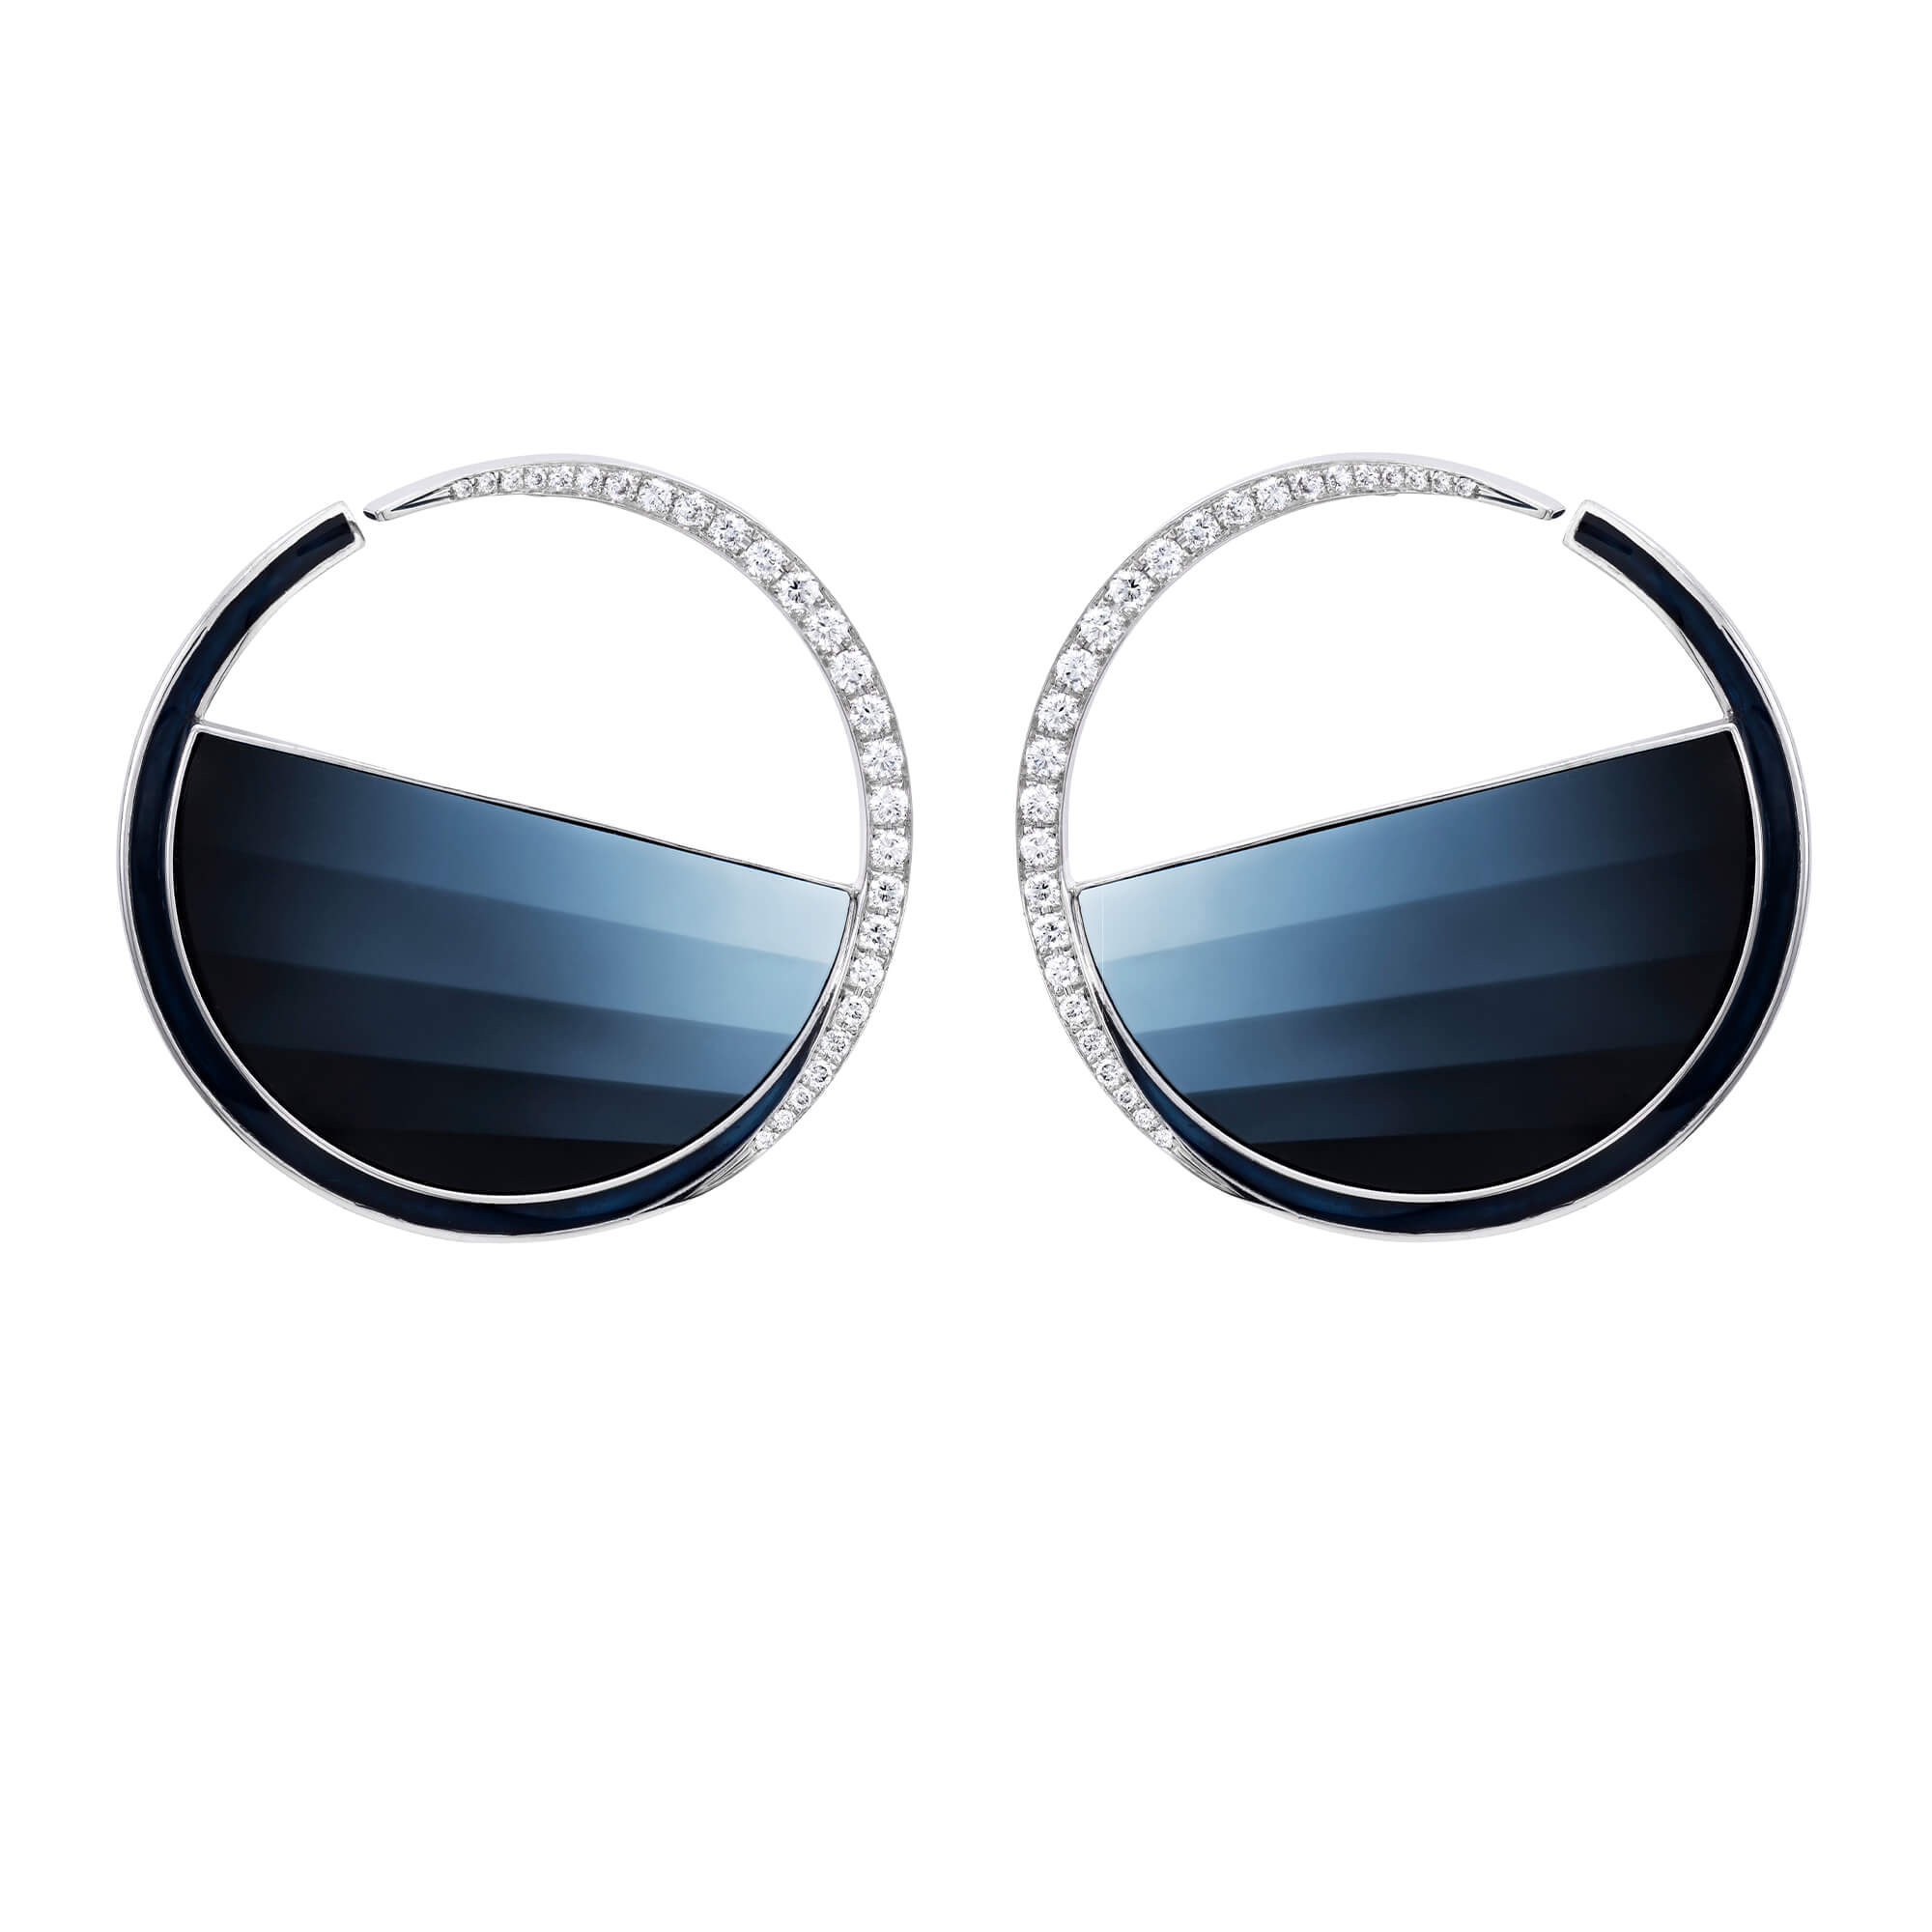 Vertigo Cameo Hoop Monochrome Agate Earrings | No Regrets